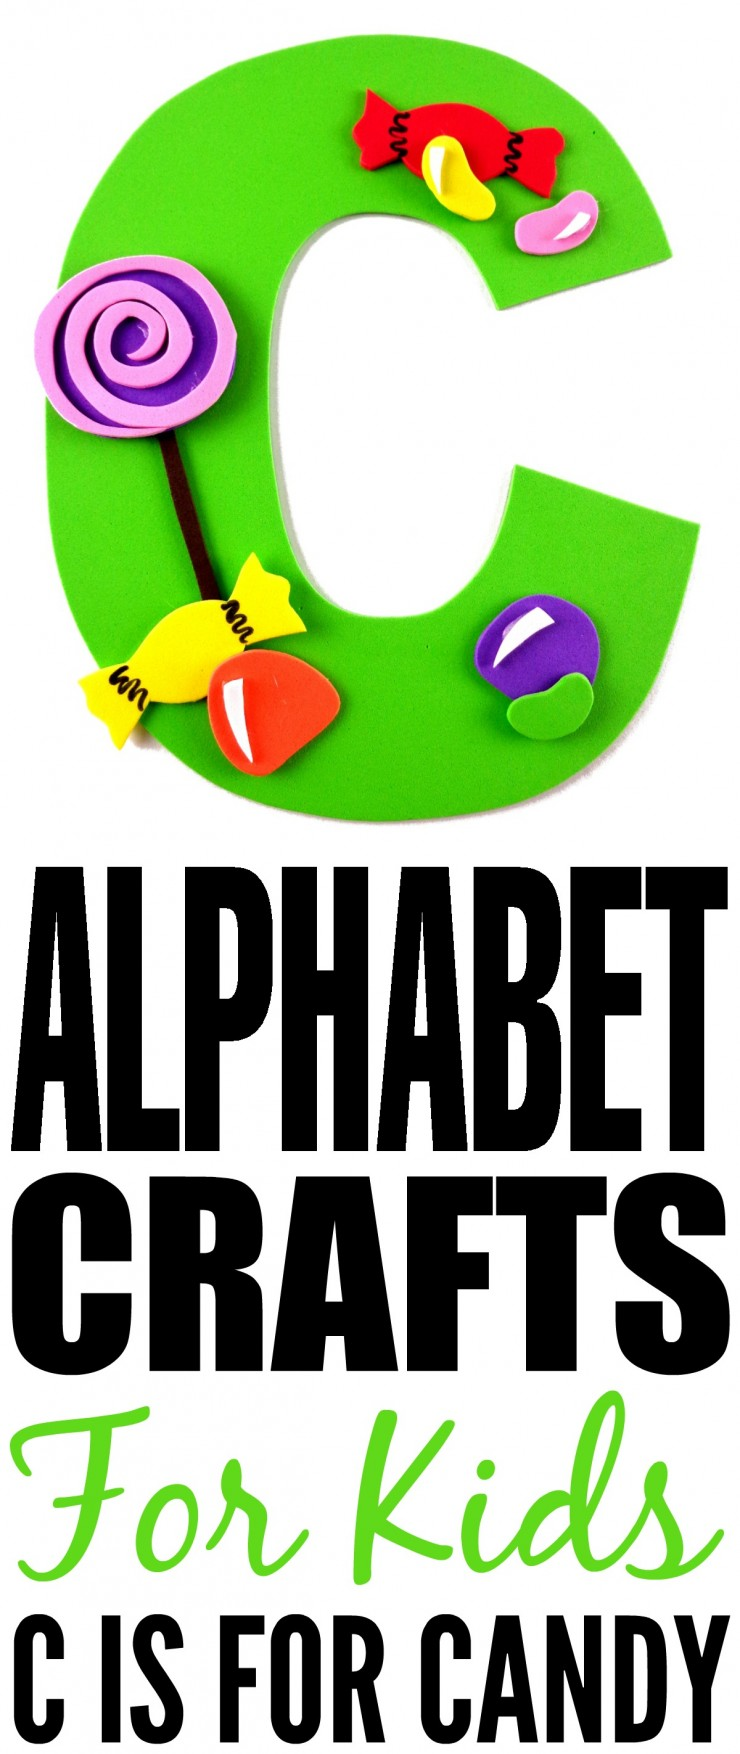 This week is my series of ABCs kids crafts featuring the Alphabet, we are doing a C is for Candy craft. These Alphabet Crafts For Kids are a fun way to introduce your child to the alphabet.